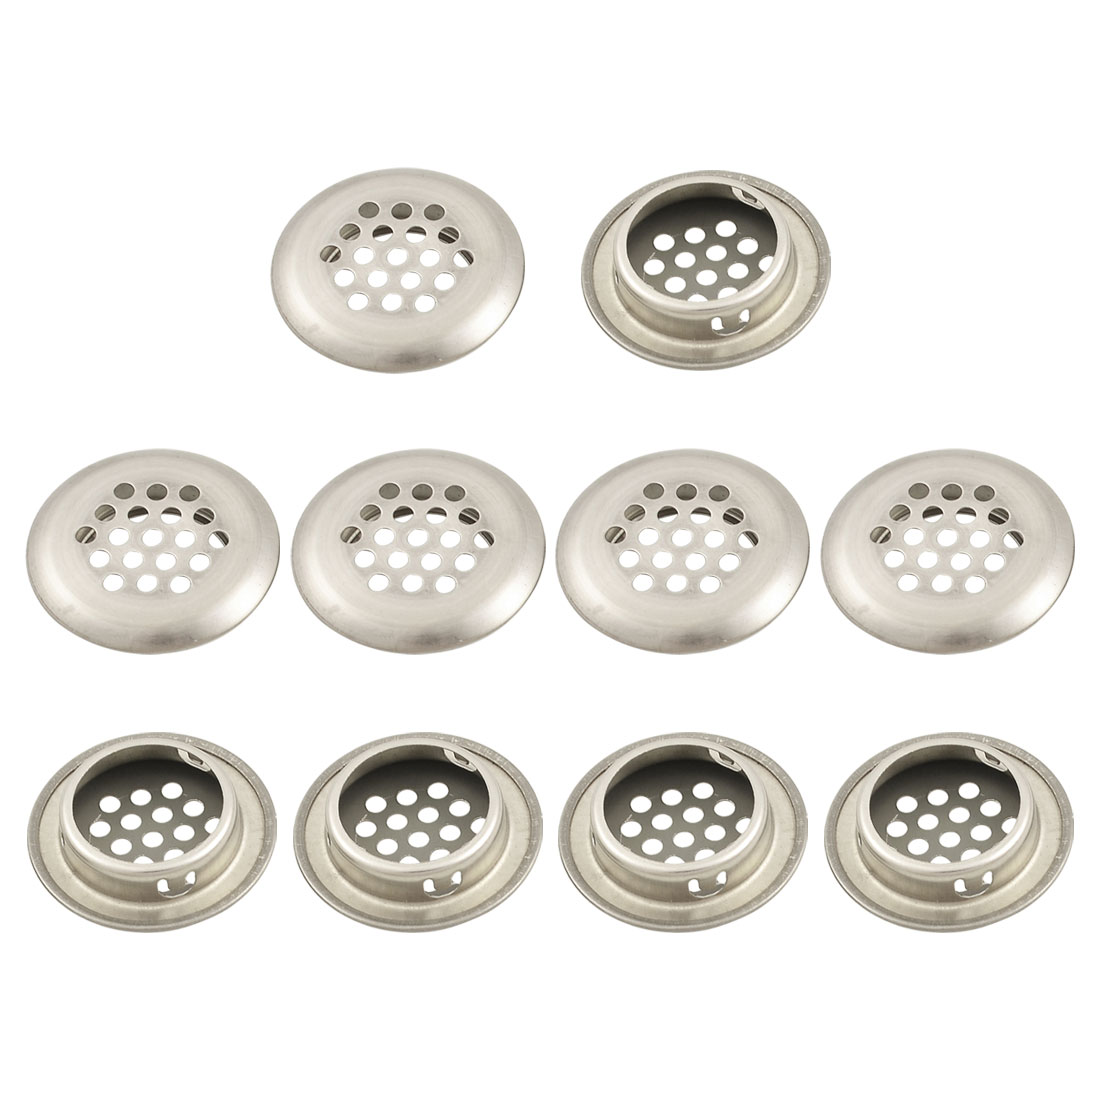 10 x Office Round Stainless Steel Air Flow Hole Ventilation Louvers 30mm